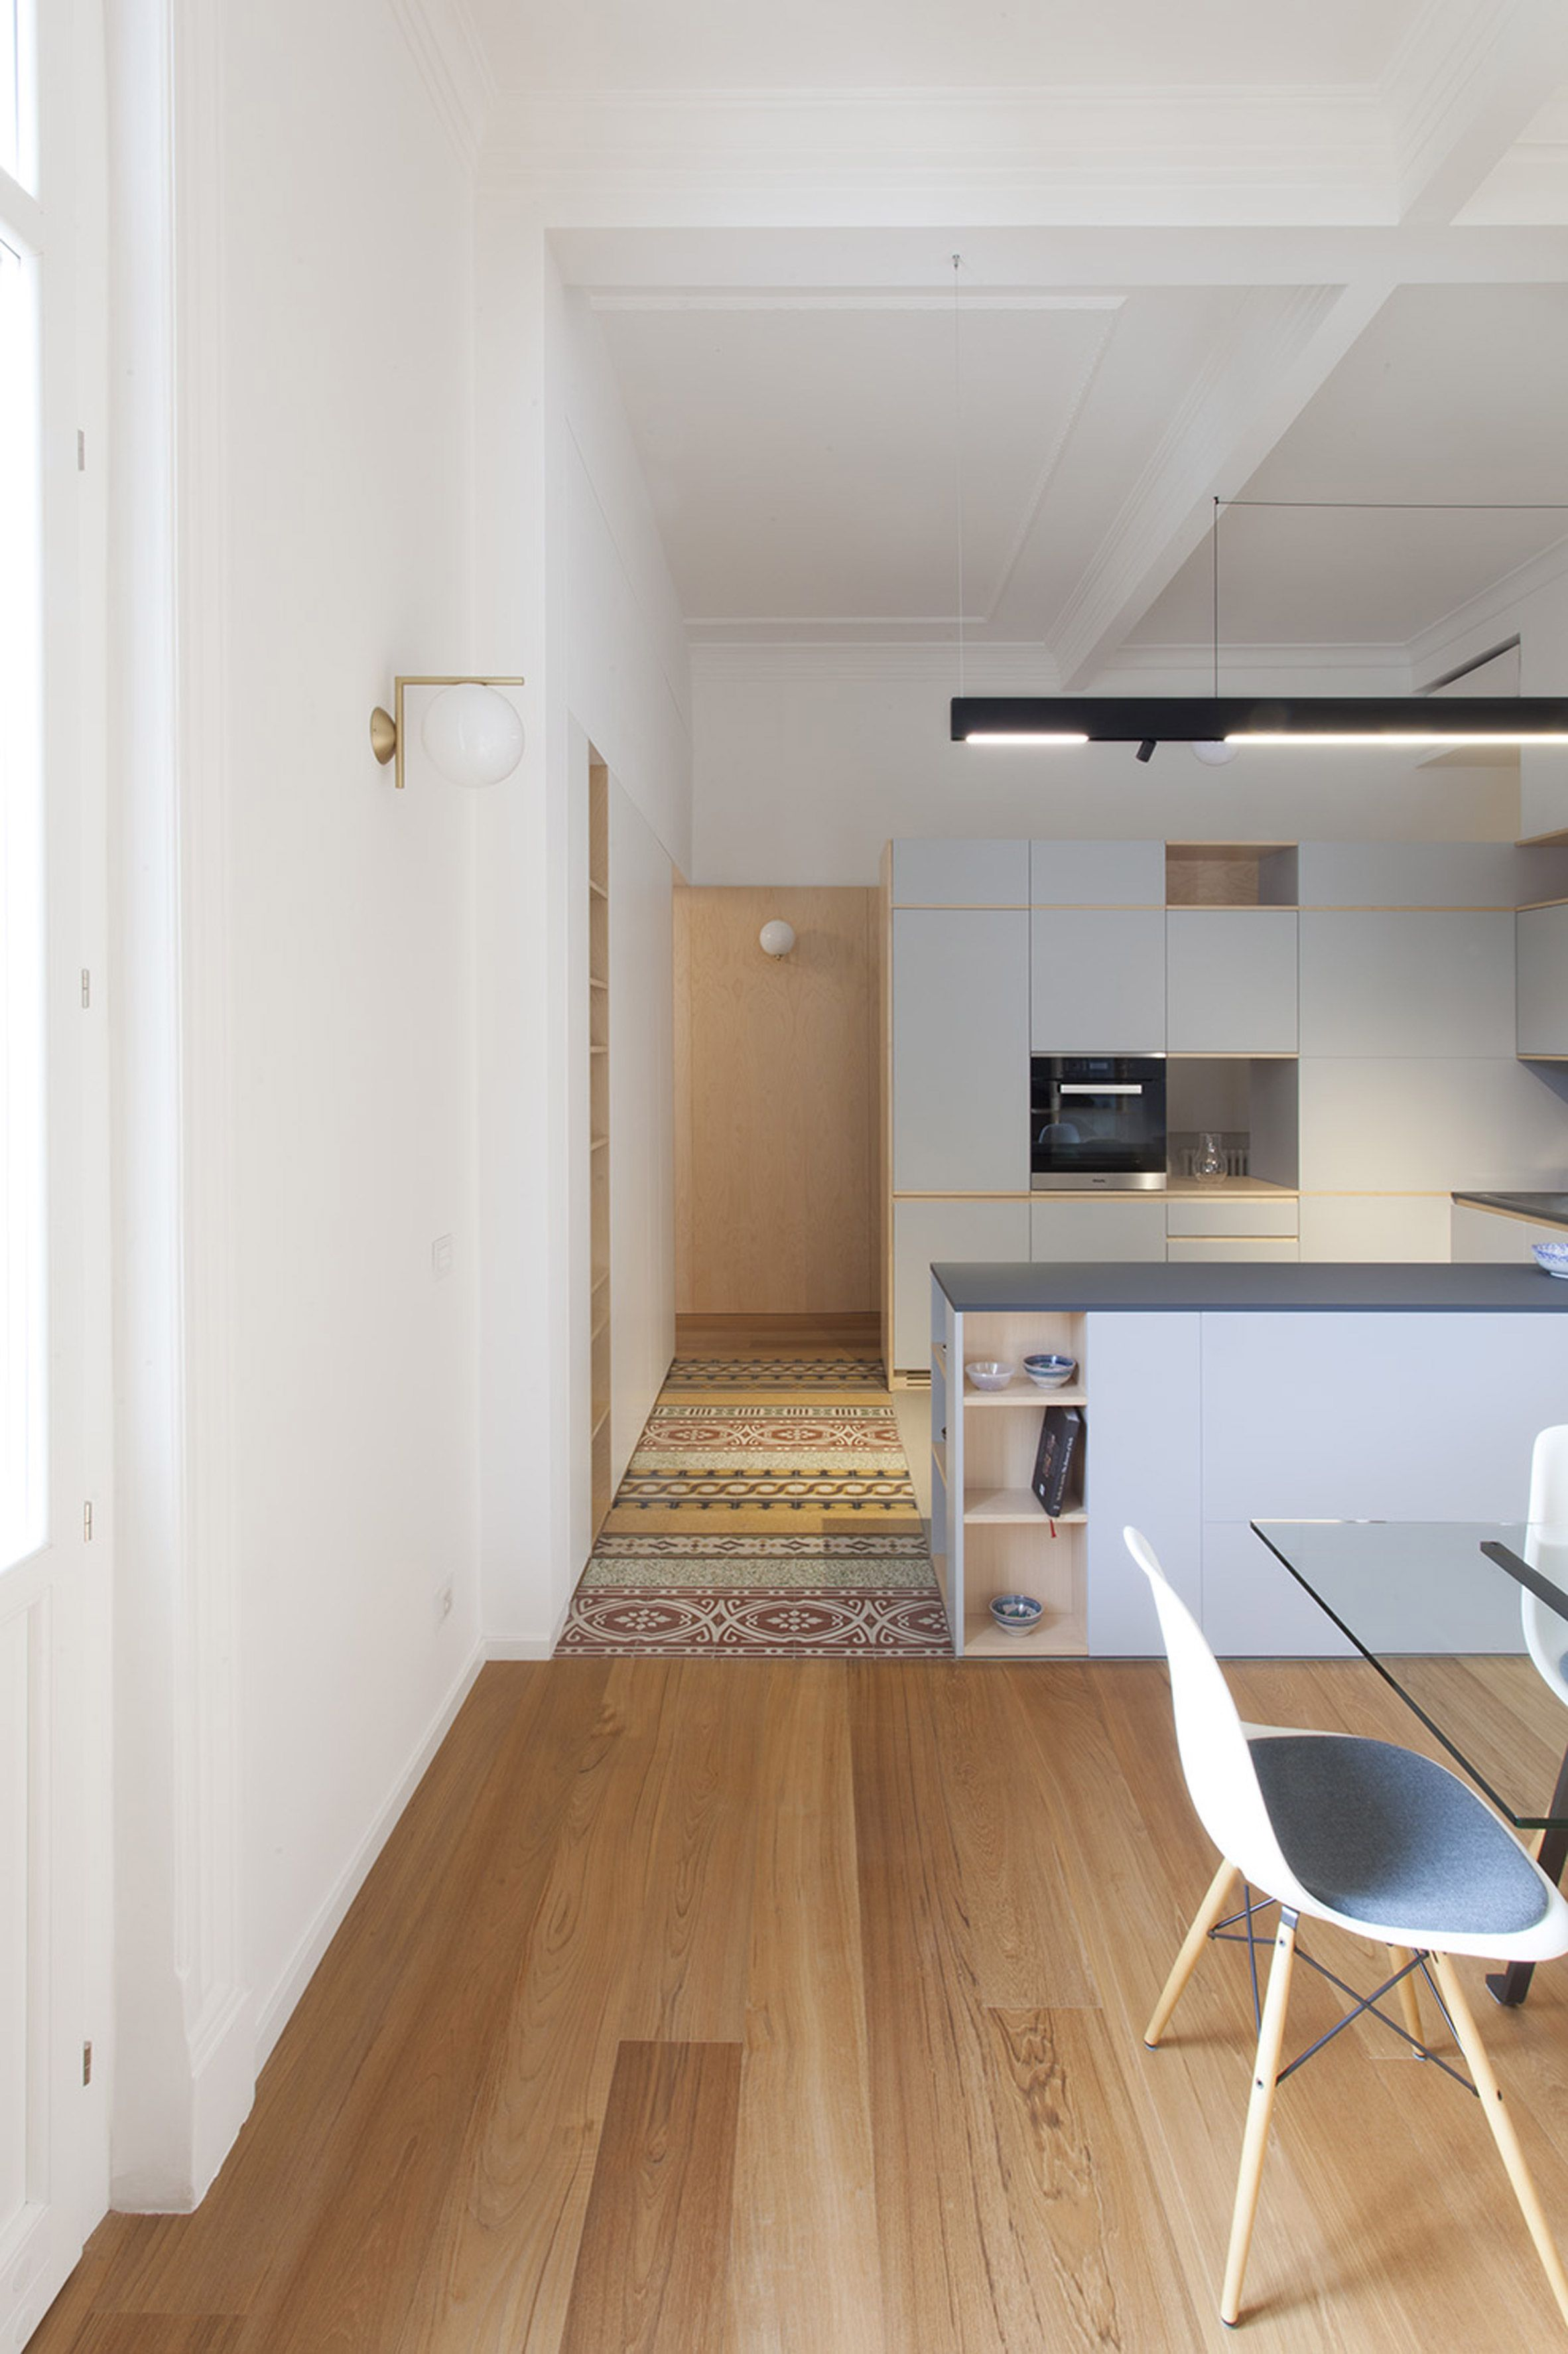 Arredamento Moderno Palermo apartment renovation in palermo by pietro airoldi studio